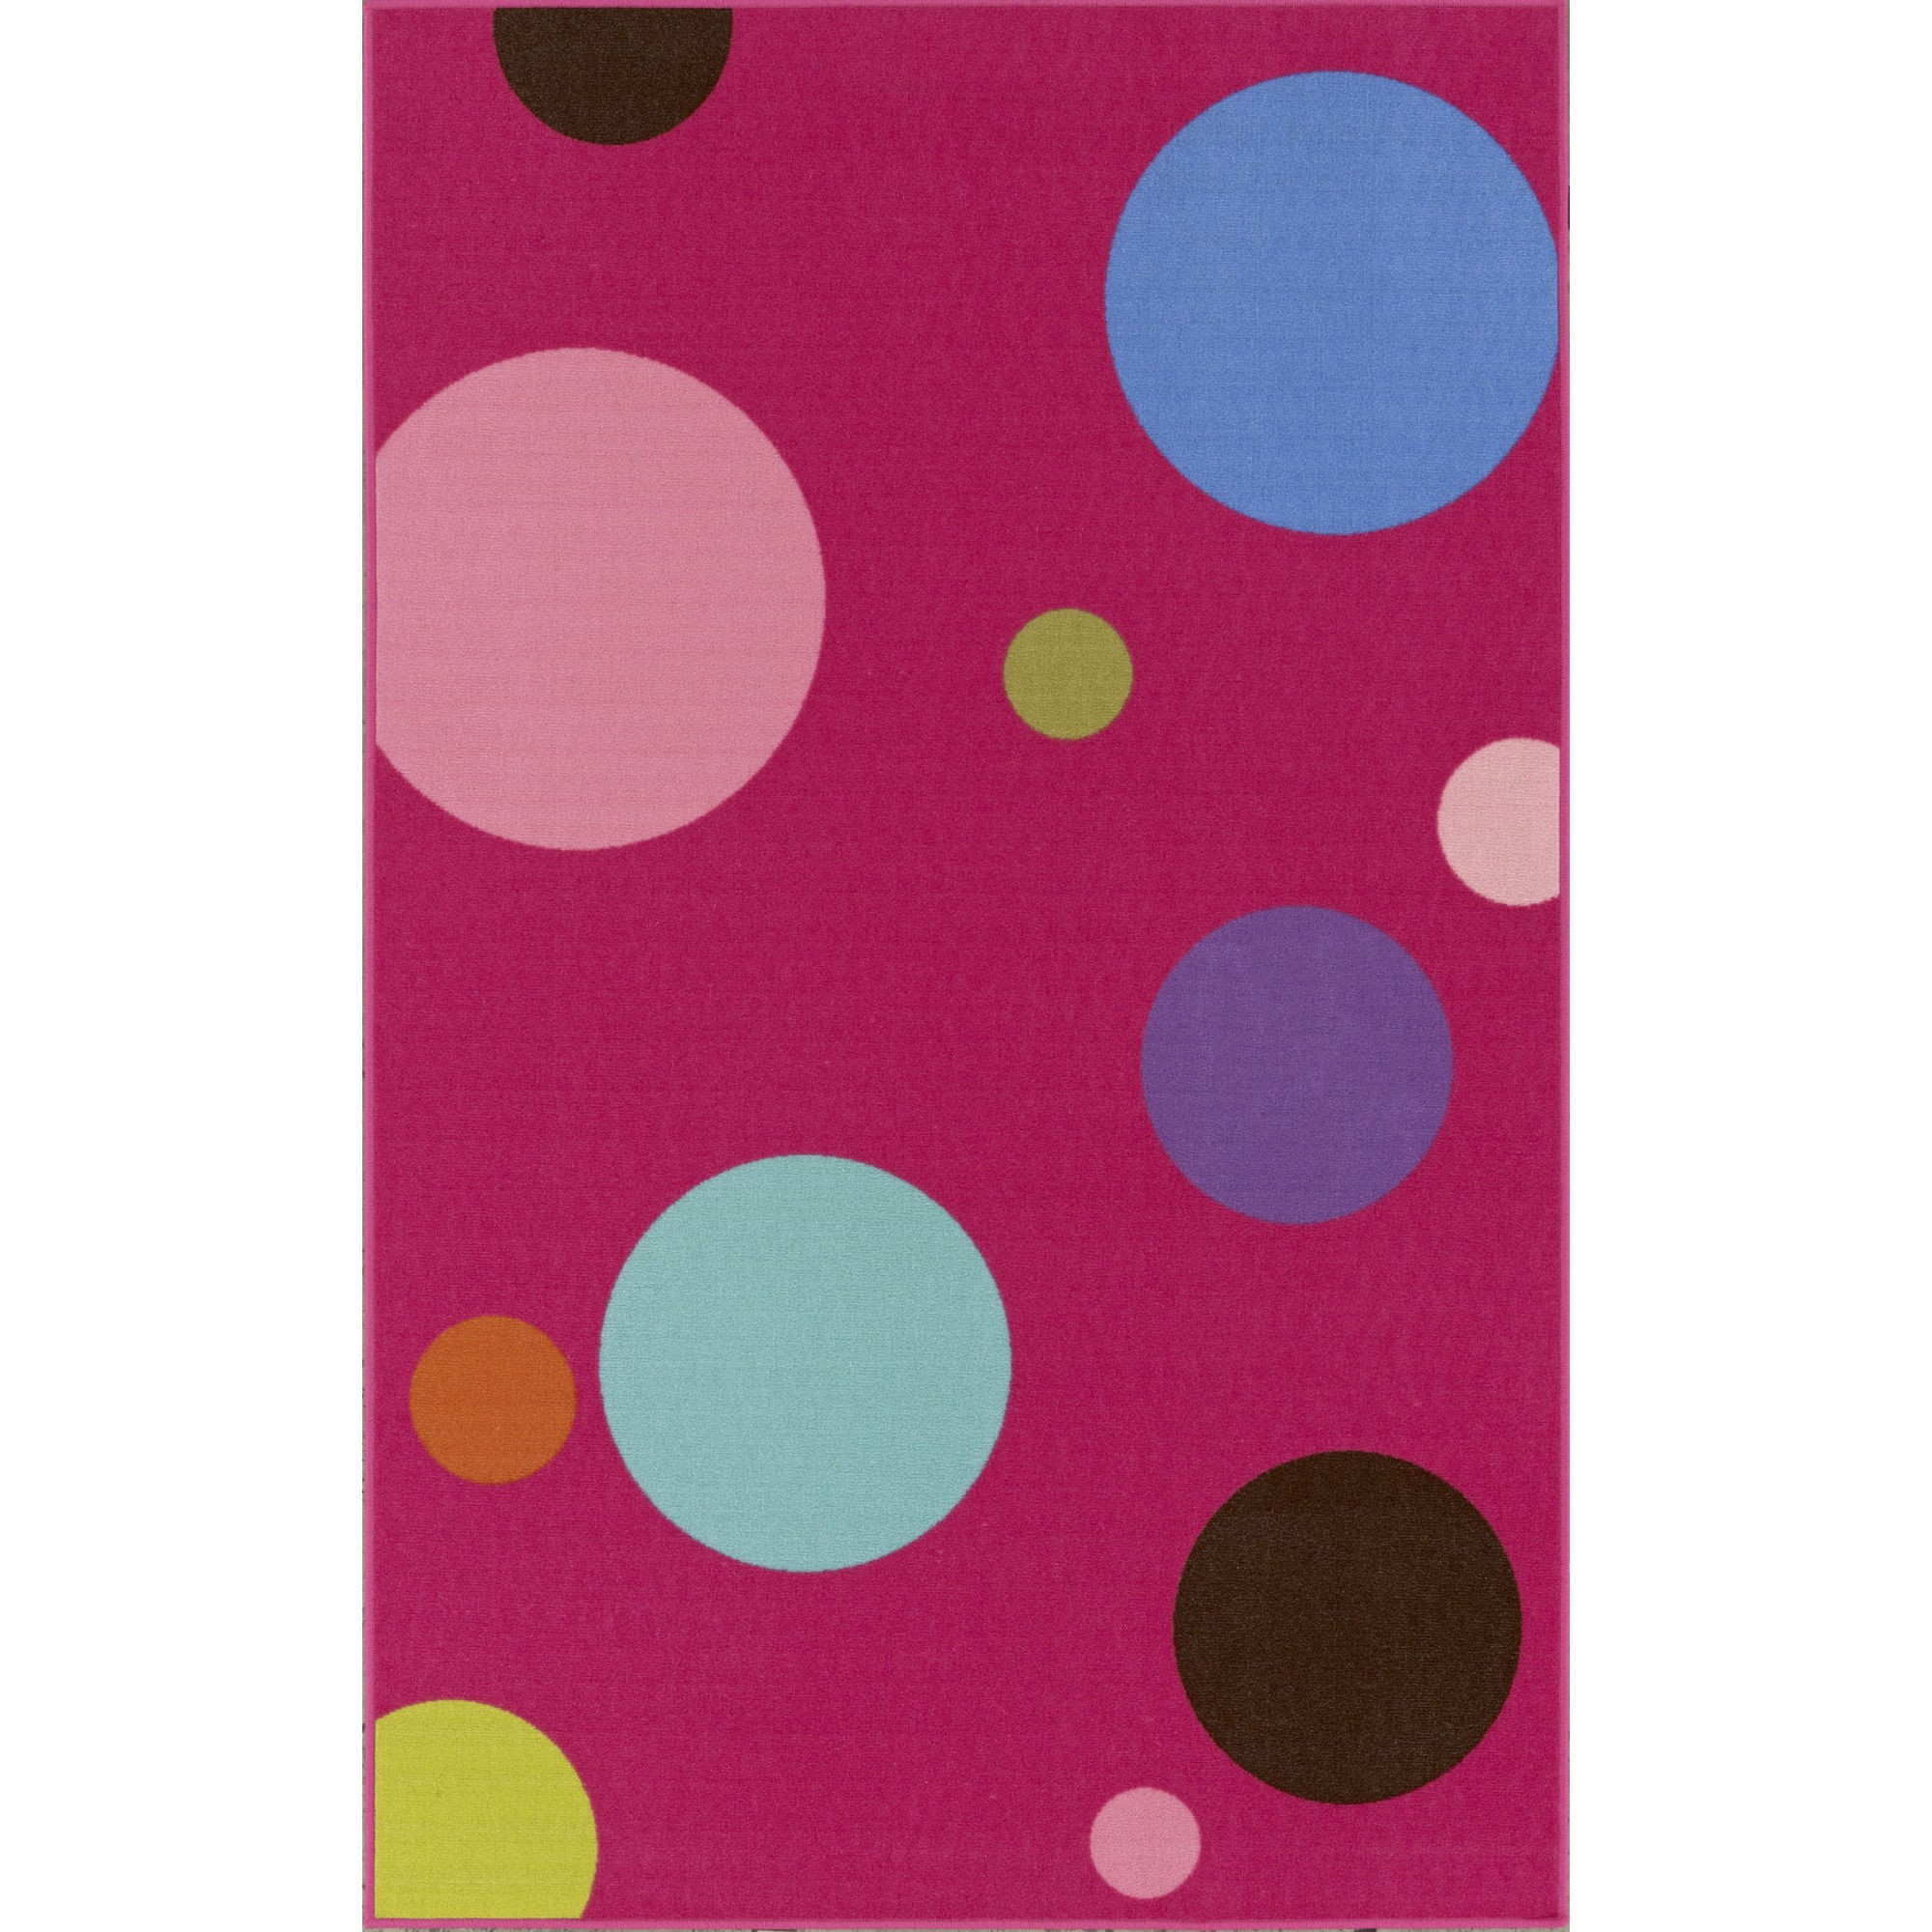 Charming Pink Dalyn Rugs With Dotted Motif For Floor Decor Ideas